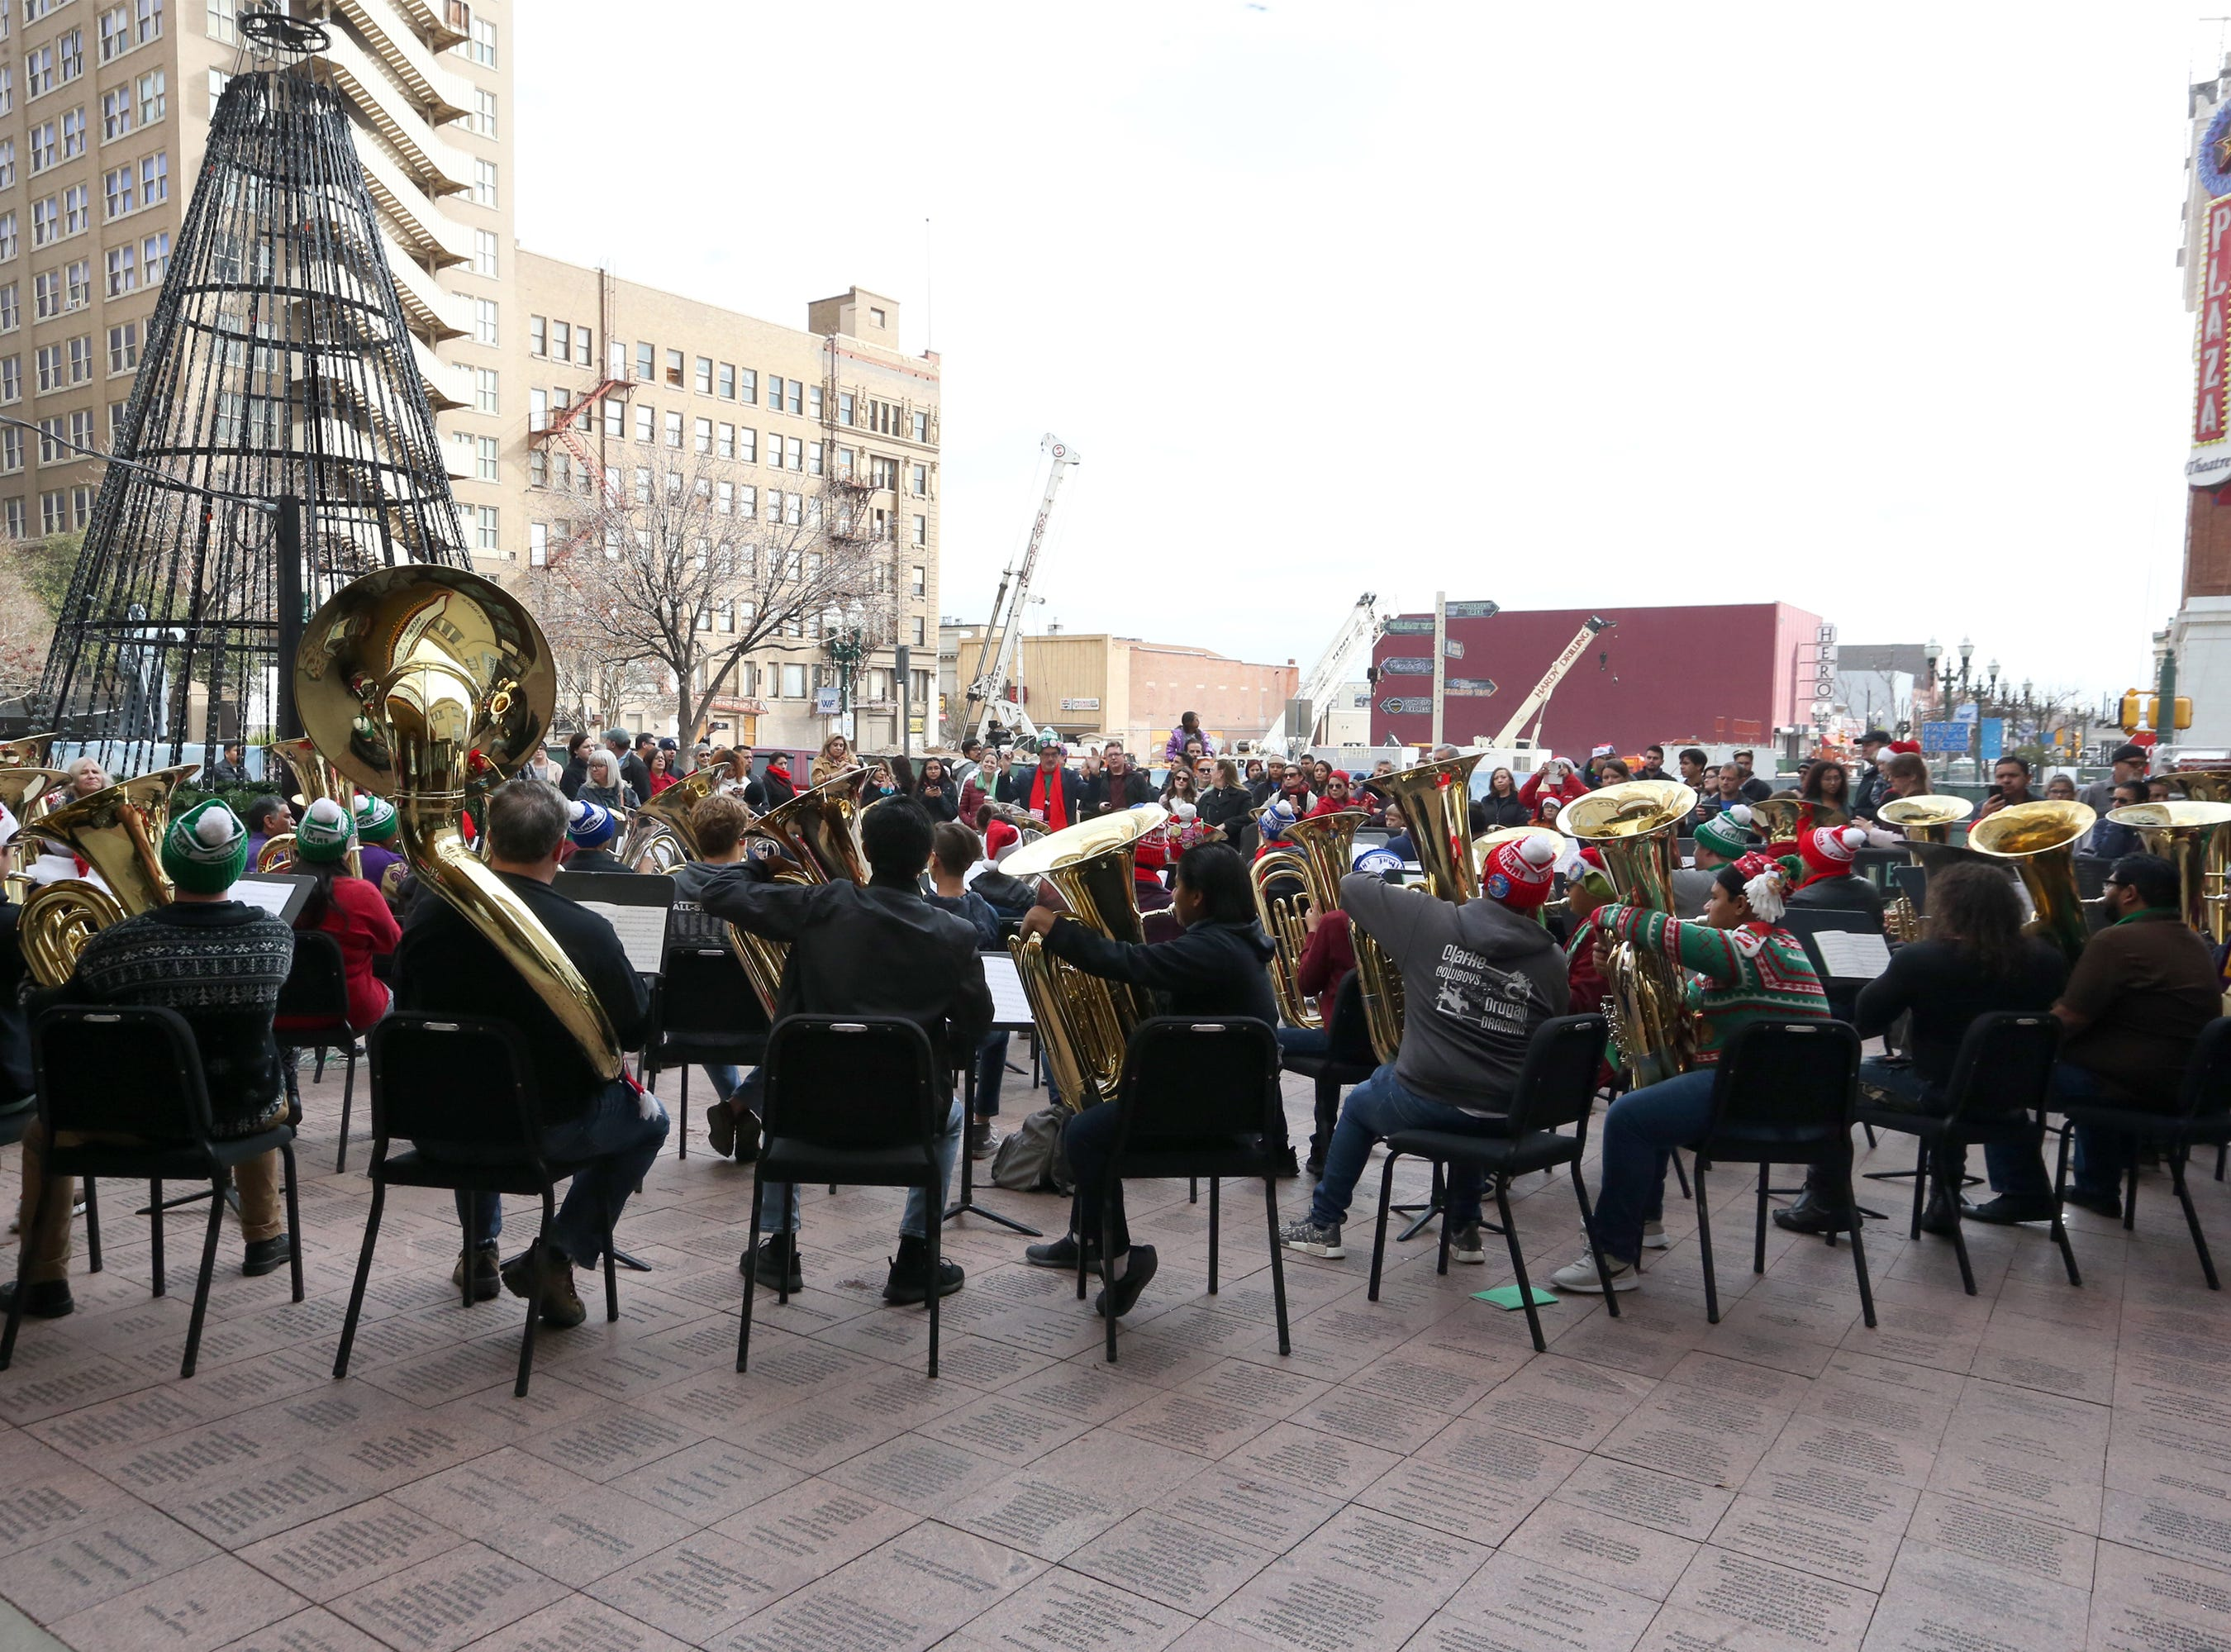 The annual Tuba Christmas concert was held Saturday in front of the Plaza Theatre in downtown El Paso. The tradition originated in New York City in 1974.